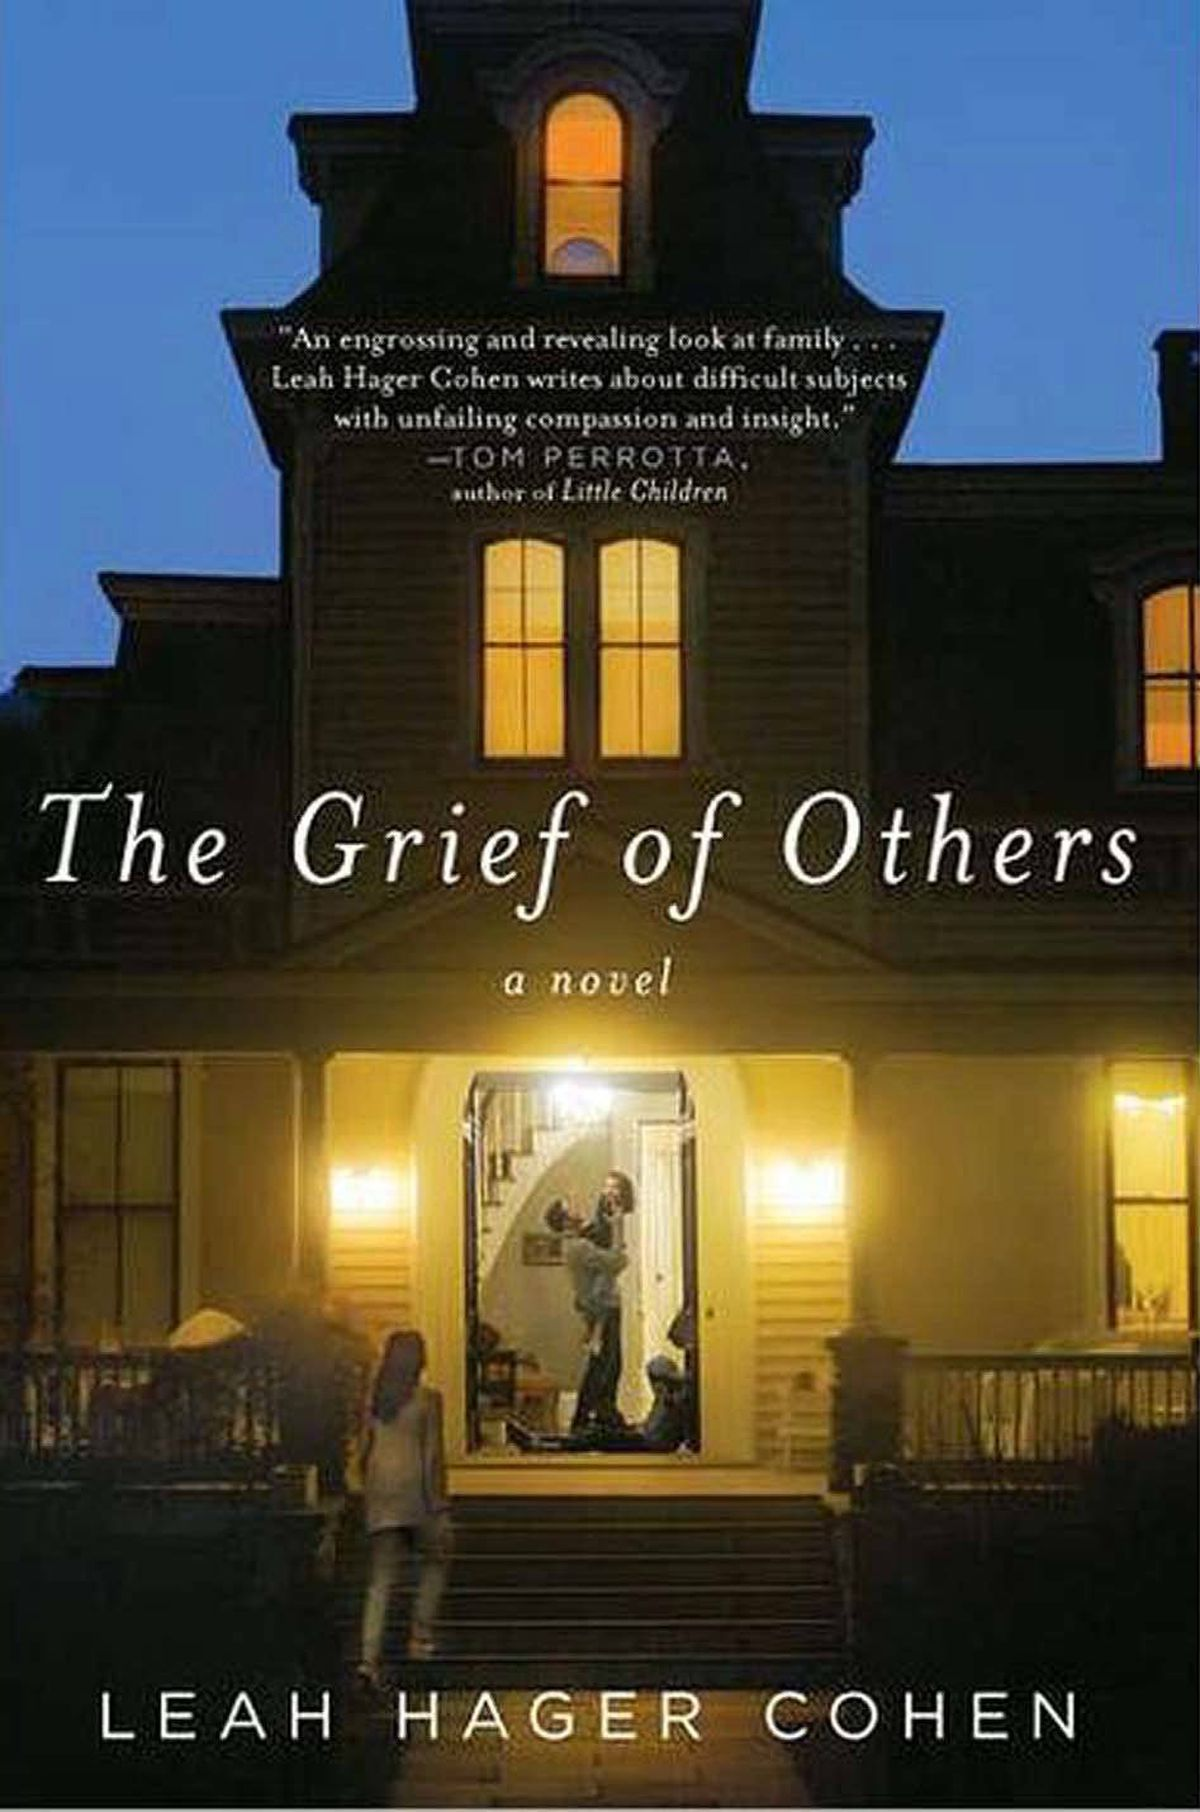 THE GRIEF OF OTHERS By Leah Hager Cohen (Riverhead) Cohen's deeply affecting novel begins with a woman in a maternity ward, struggling to come to grips with the death of her baby, who lived for only 52 hours. A year later, the family is still reeling. This is a complex and resonant novel, a moving exploration of the ways grief can twist and maim us. – Steven Hayward